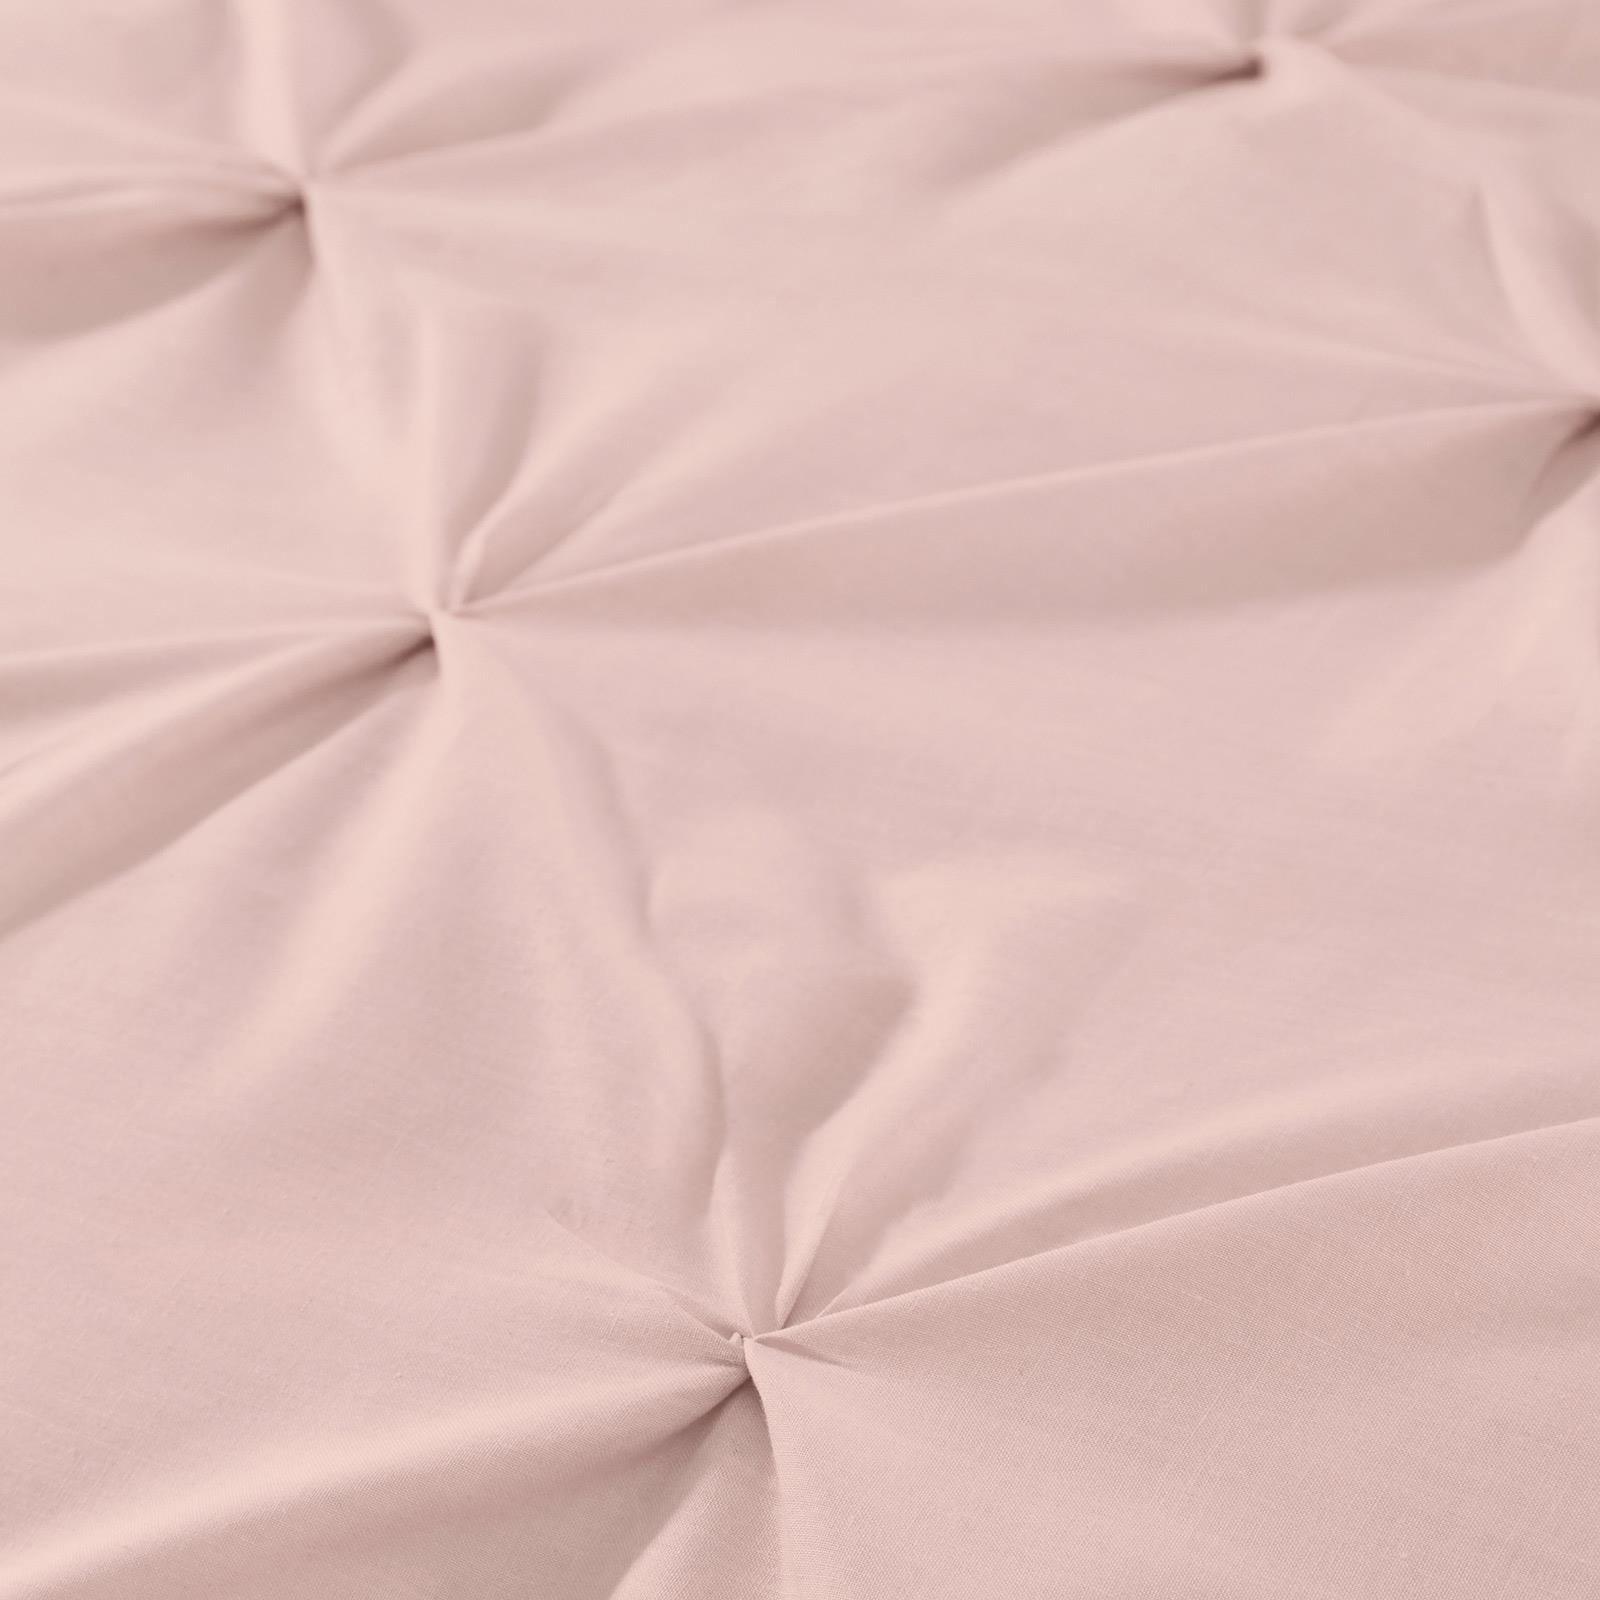 Blush-Duvet-Covers-Ruched-Pin-Tuck-Stitched-Plain-Pink-Quilt-Cover-Bedding-Sets thumbnail 20